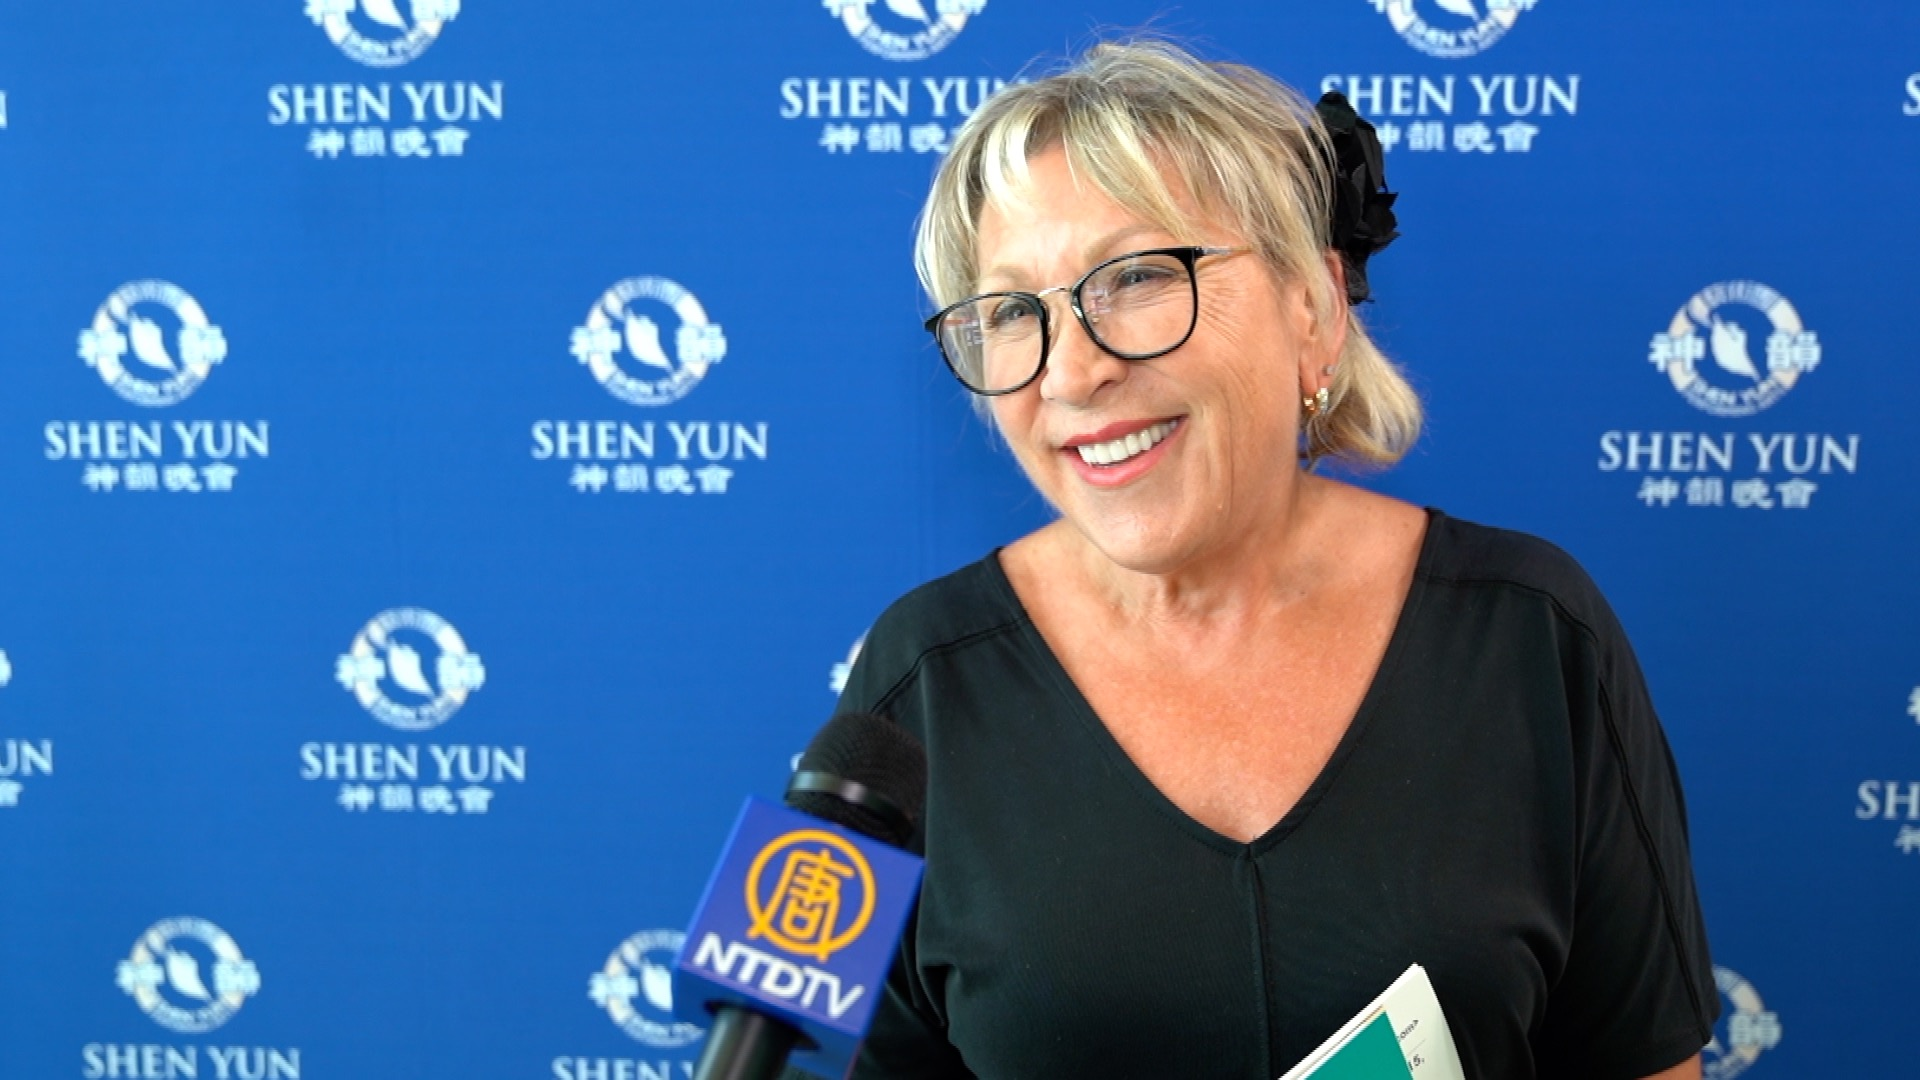 Shen Yun Shows Faith, Hope, Love and Humanity Says Director of Research Centre